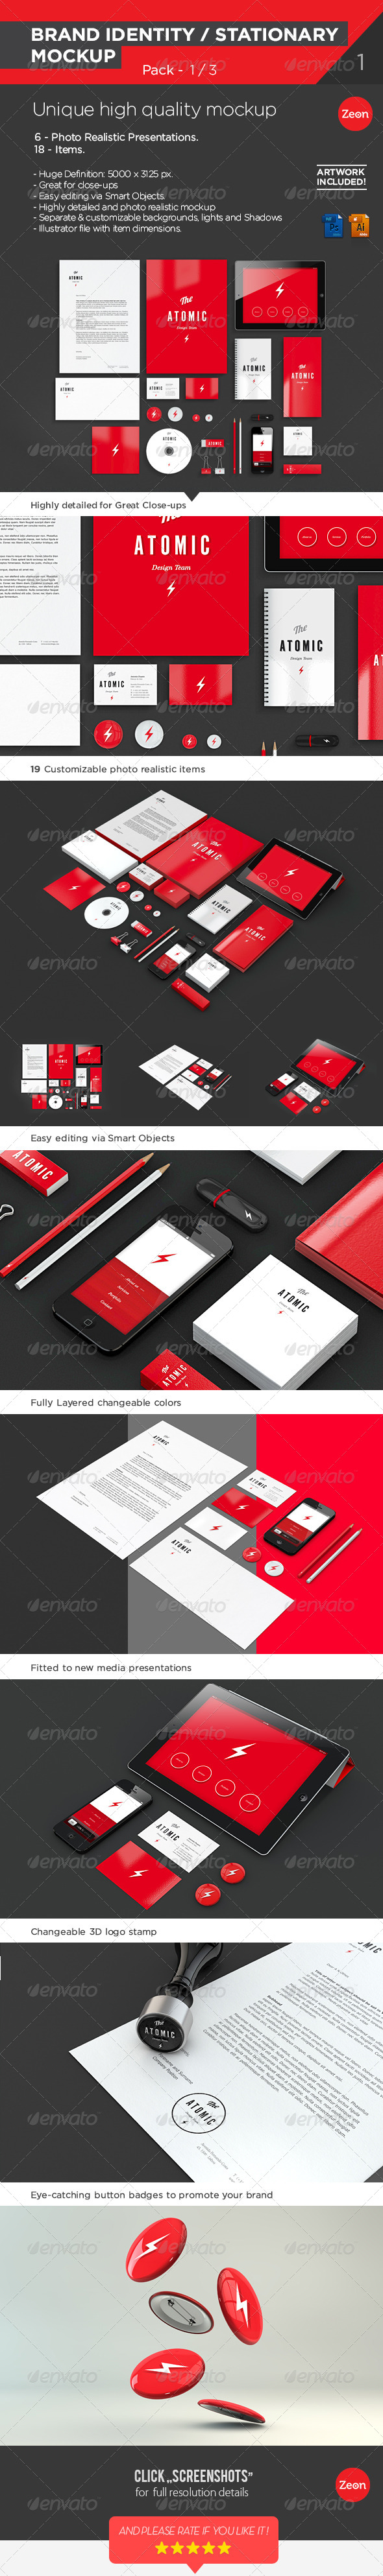 Brand Identity | Stationary Mockup - Pack:1/2 - Print Product Mock-Ups